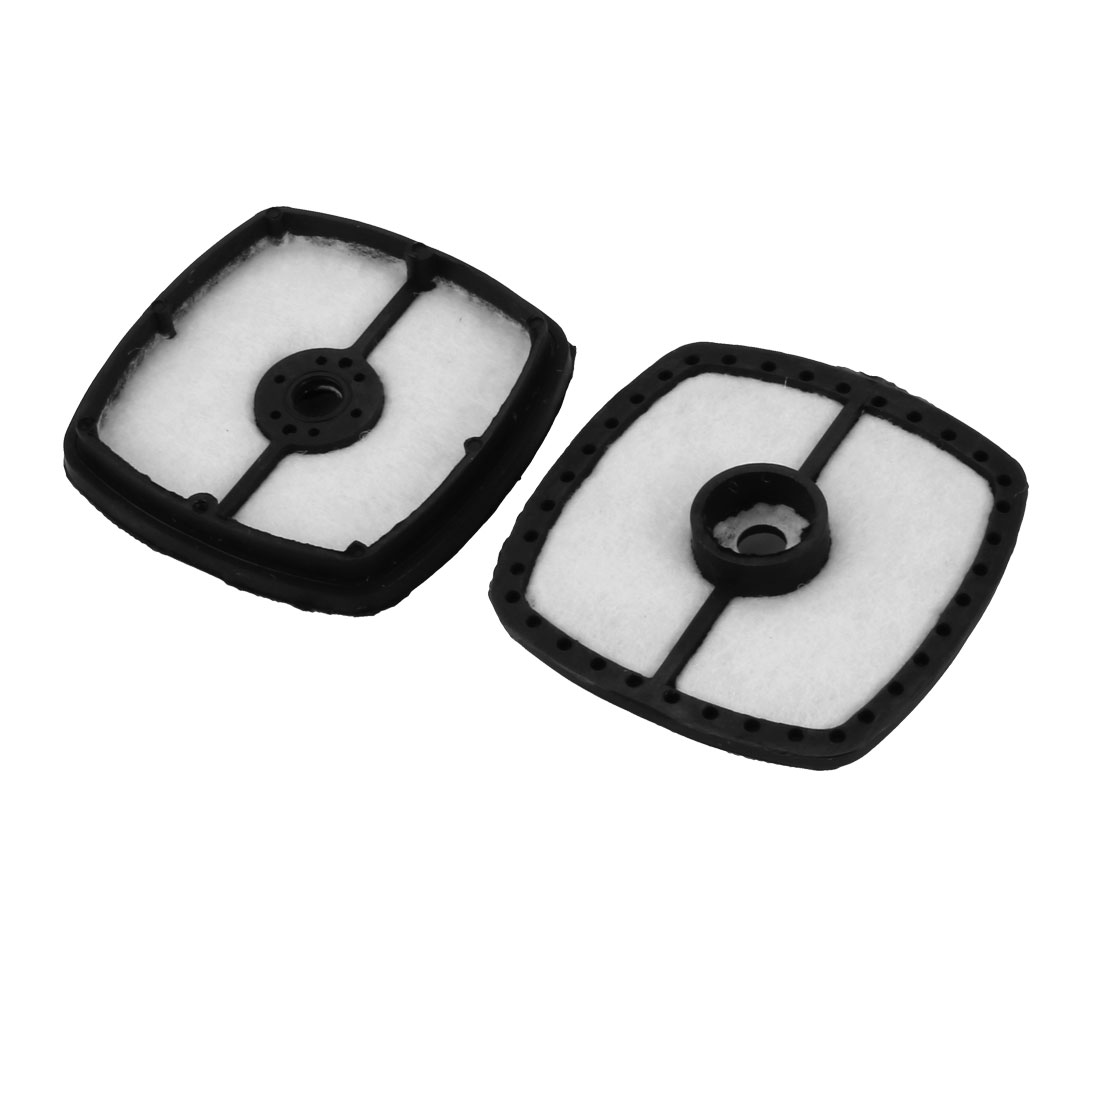 2pcs Replacement Extra Guard Panel Engine 7 Air Filter Cleaner Accessory Black